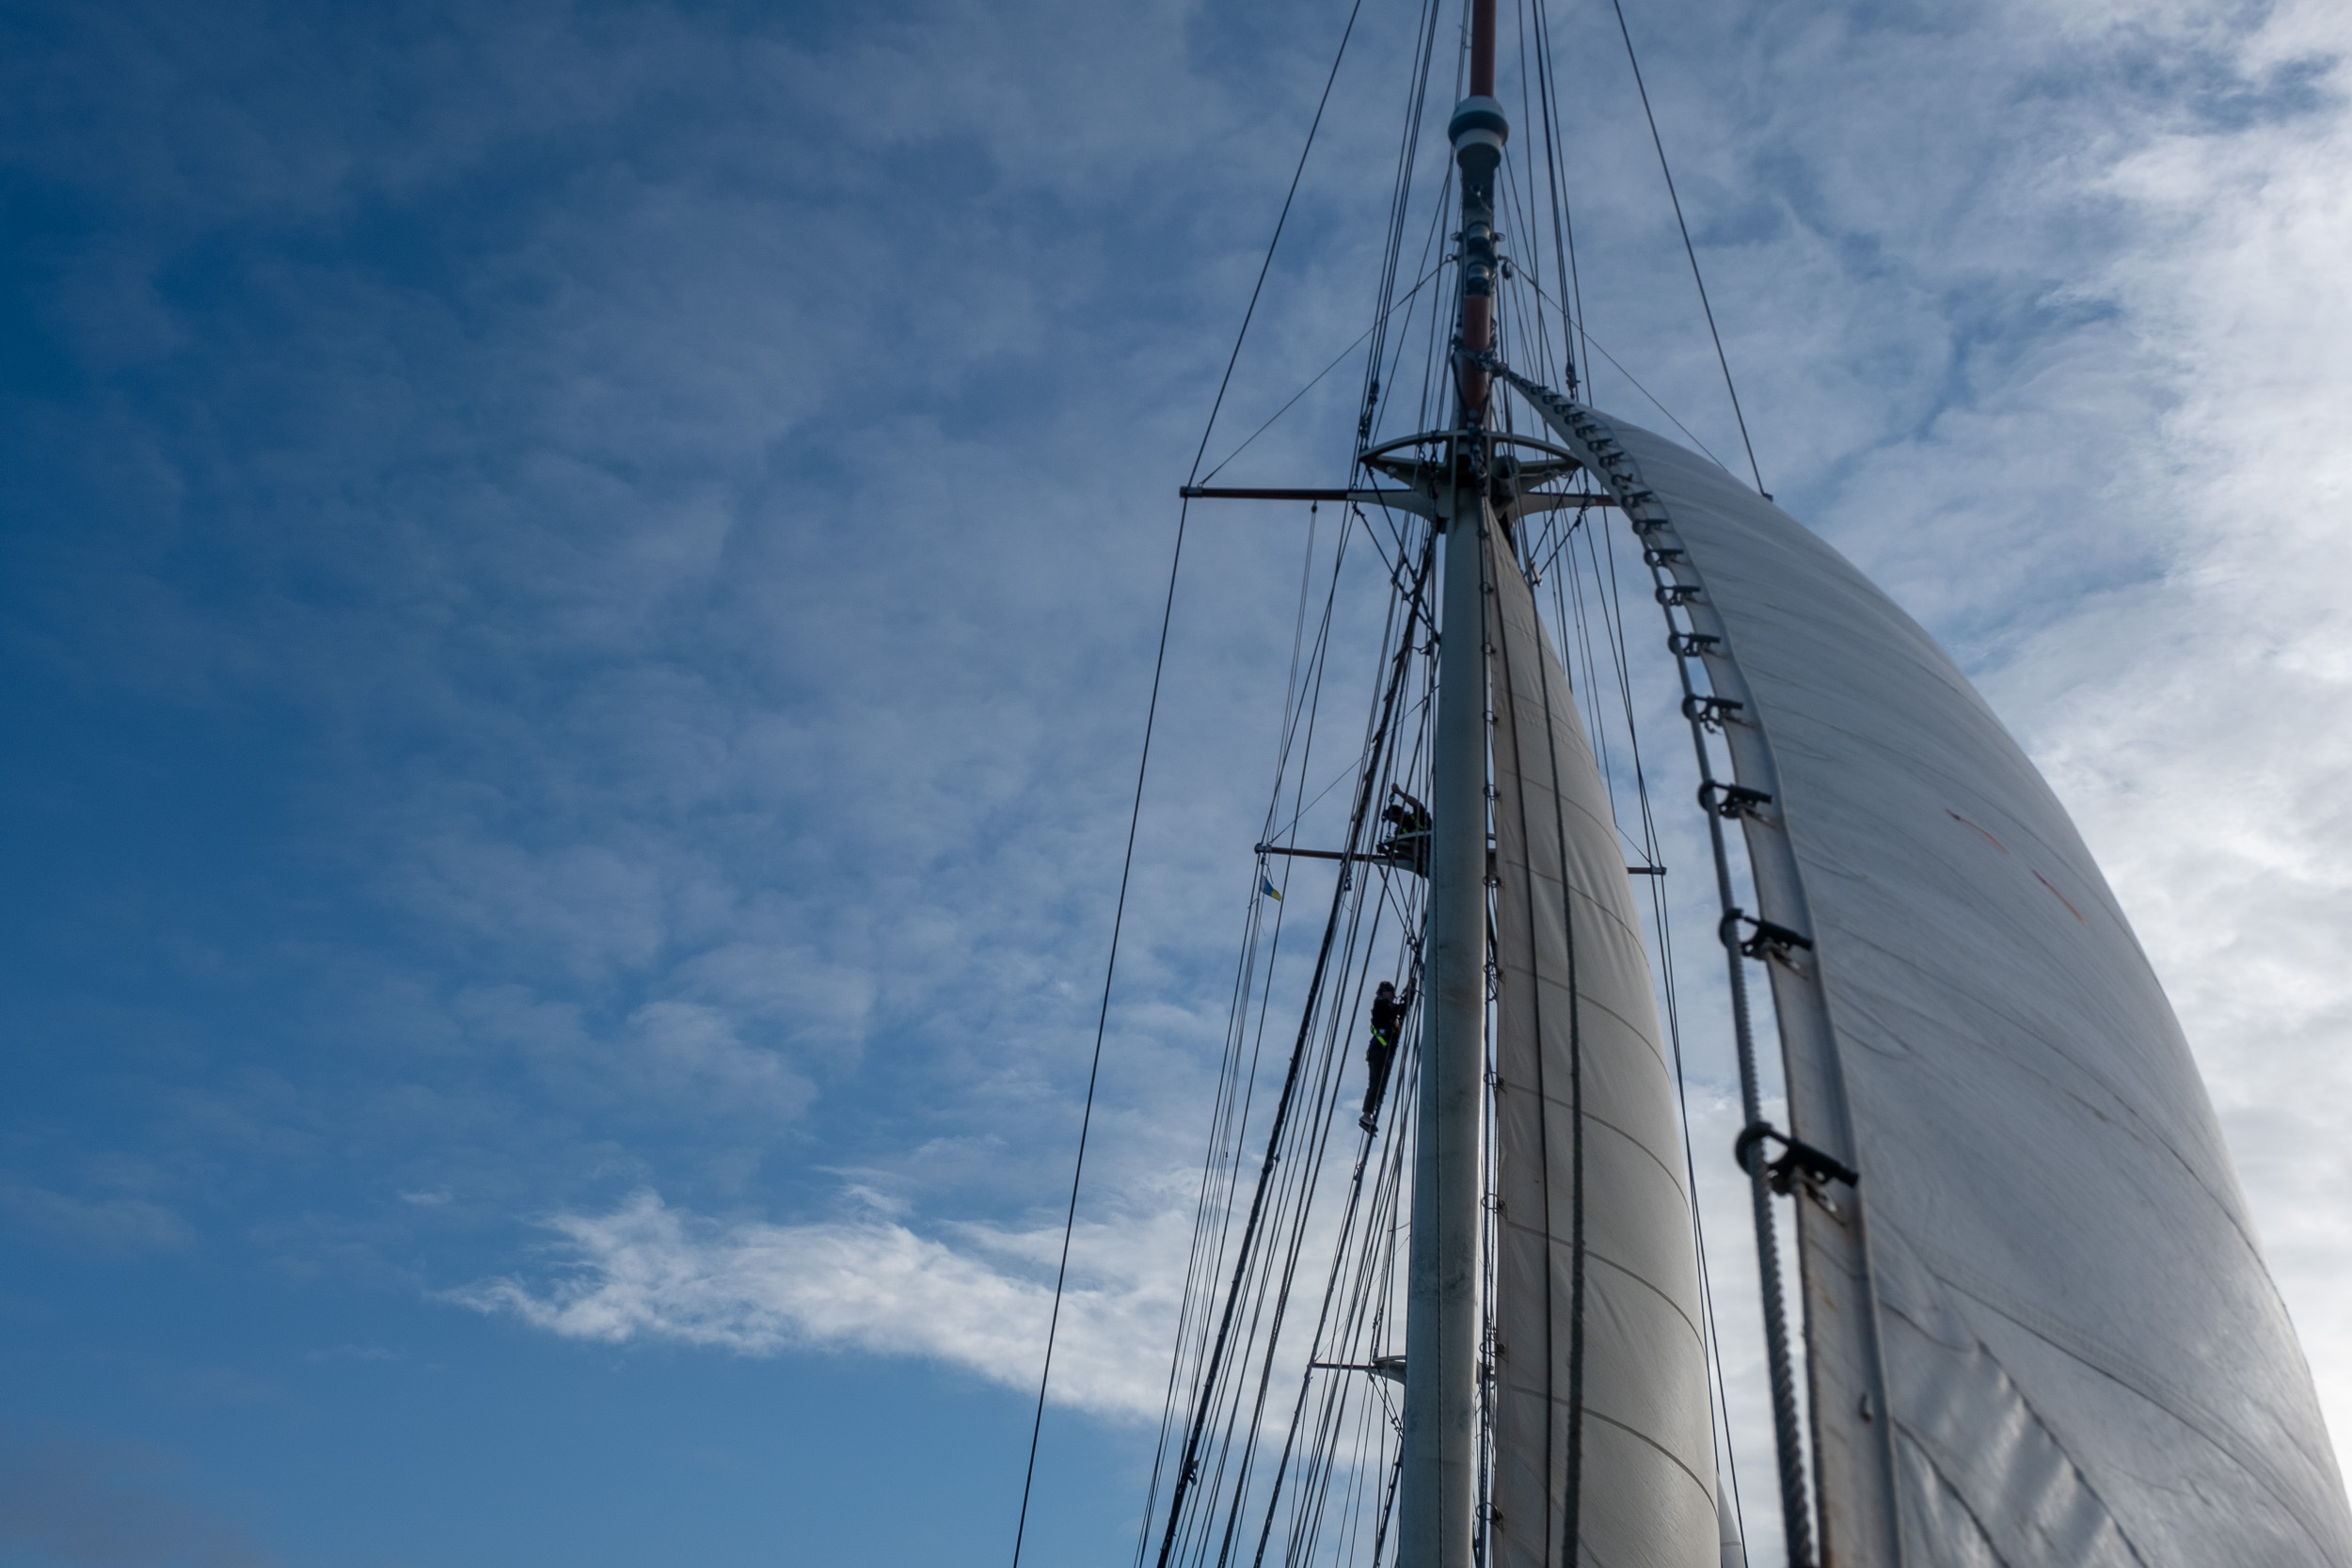 From the bowsprit looking back to the inner jib and watching someone climbing the mast